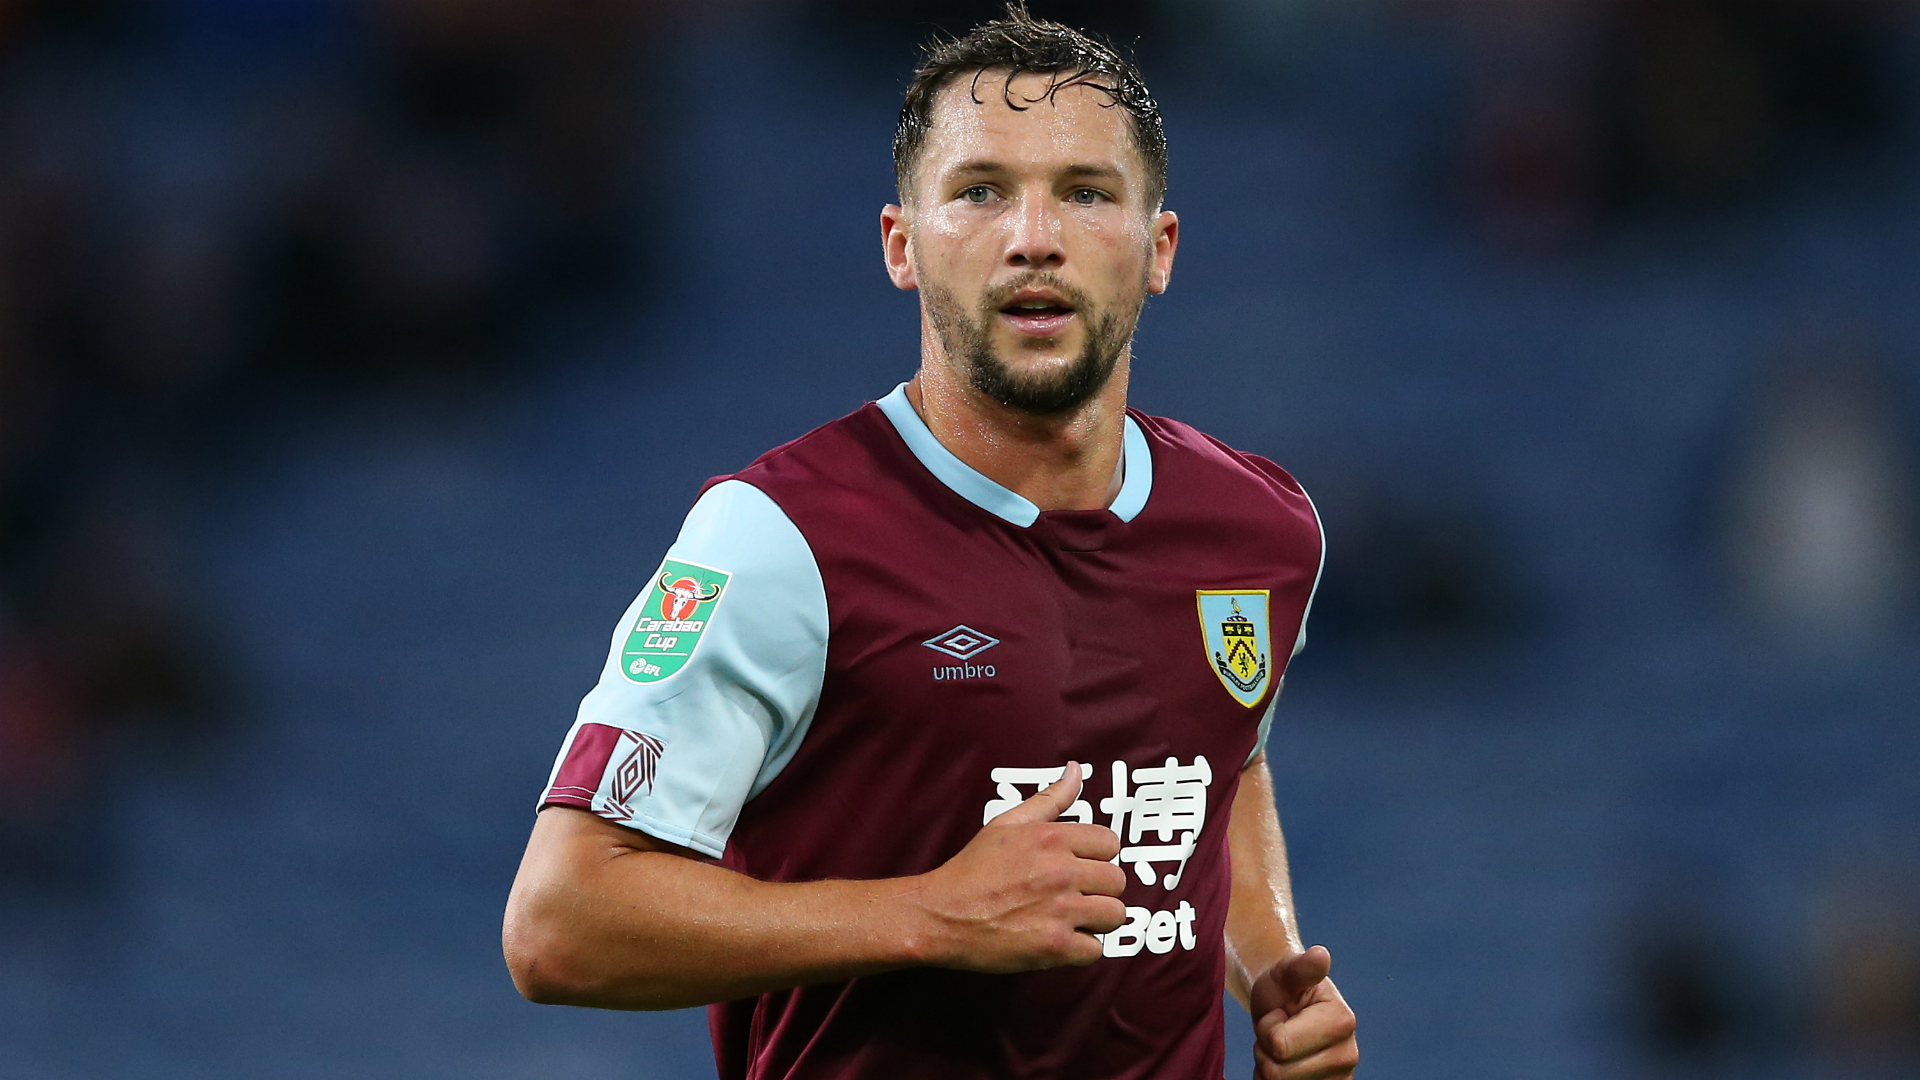 Sean Dyche wants to move on from an incident in which Danny Drinkwater was reportedly attacked outside a Manchester nightclub.